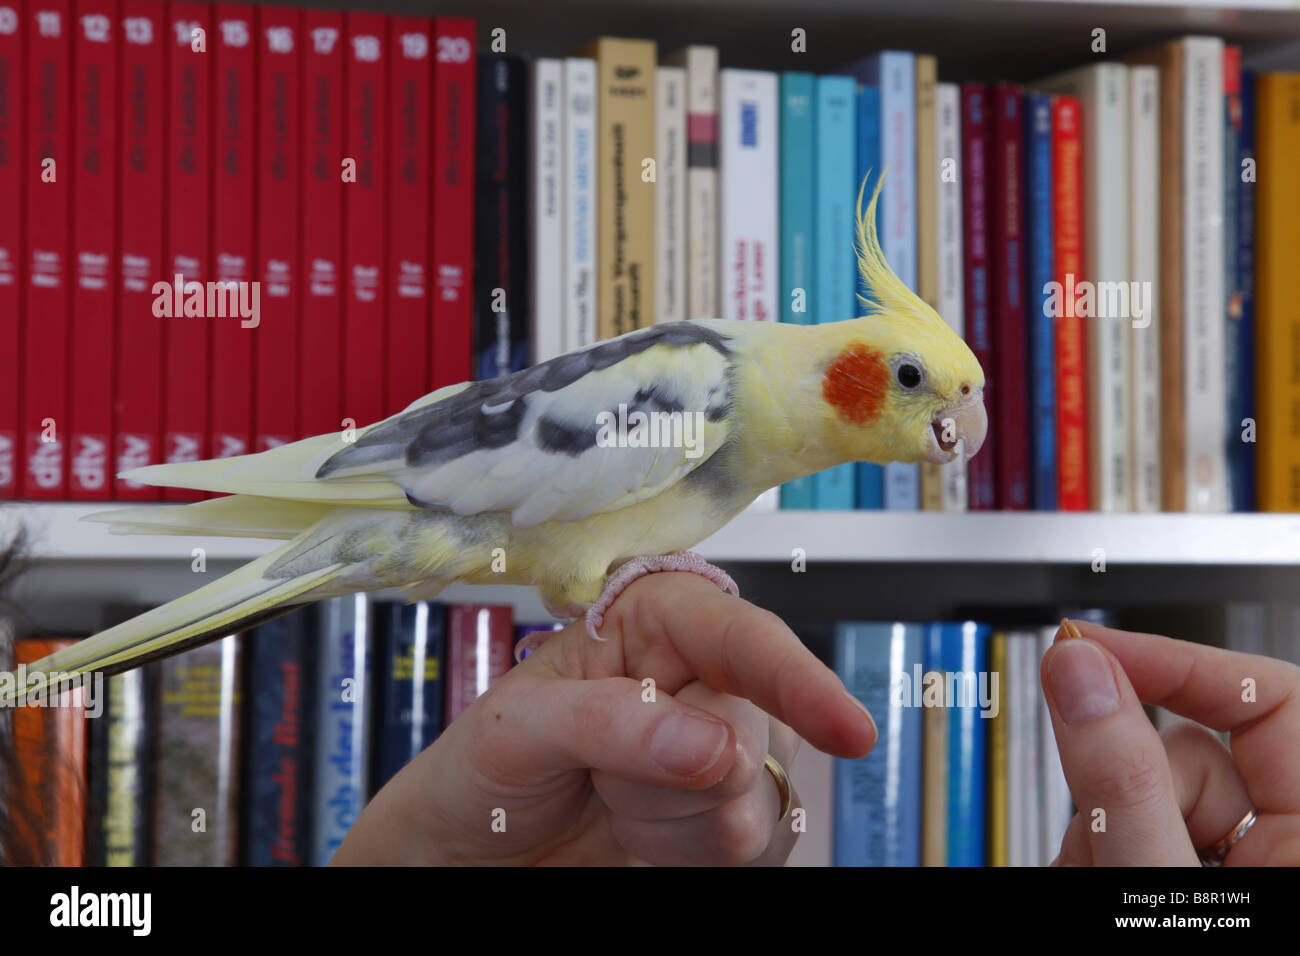 cockatiel (Nymphicus hollandicus), sitting on a person's hand, being fed with seeds in the living room Stock Photo